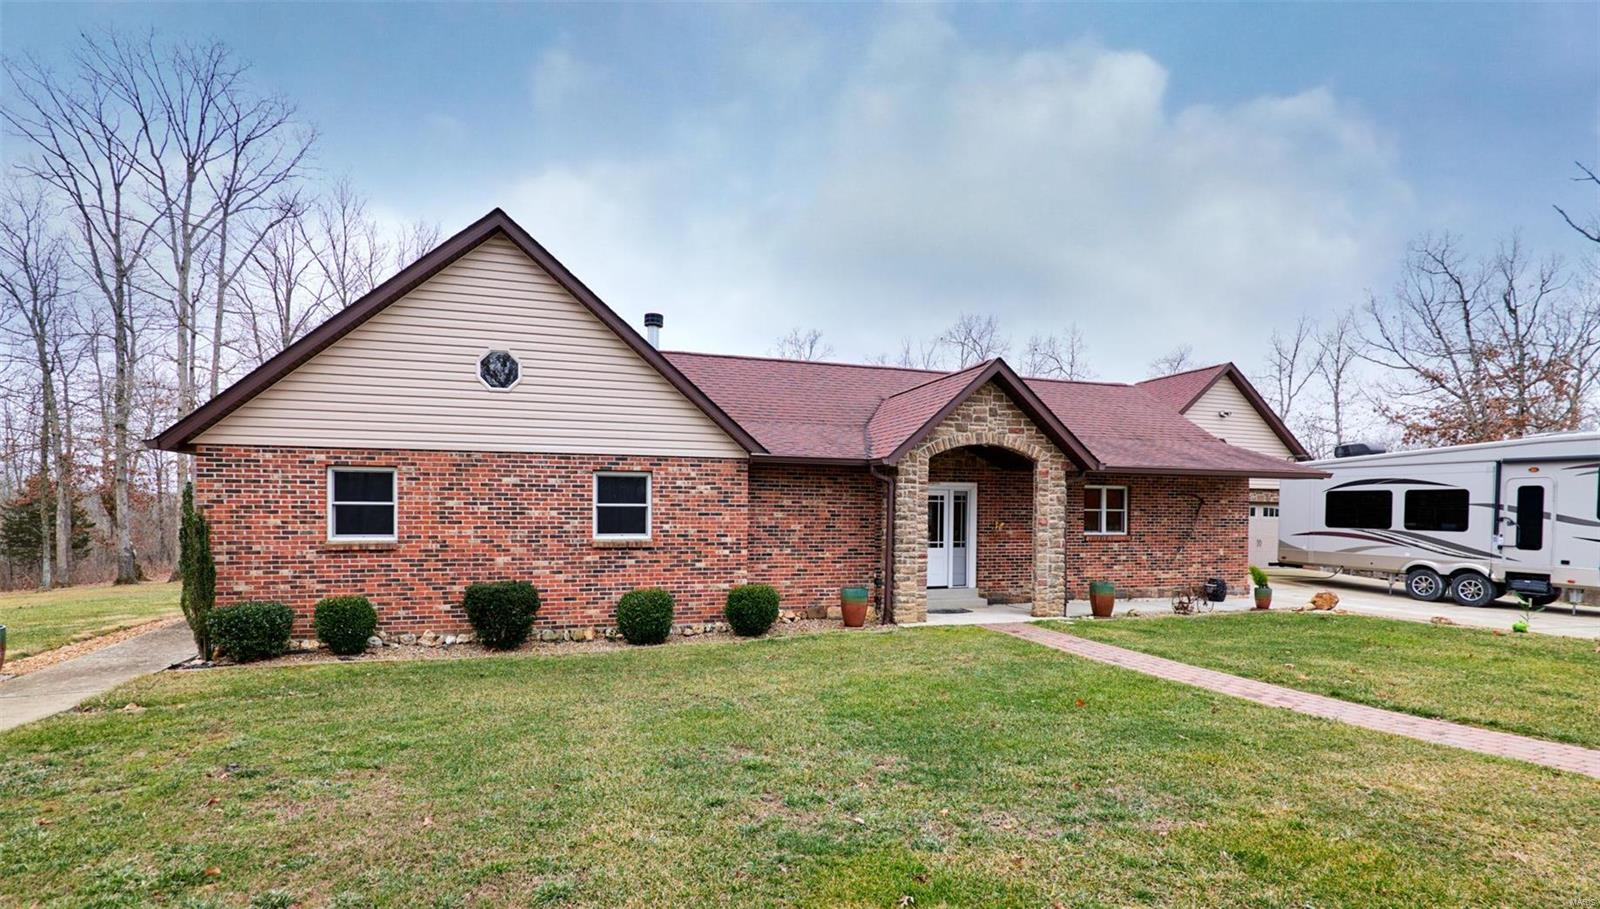 33191 N Palmyra Rd. Property Photo - Warrenton, MO real estate listing